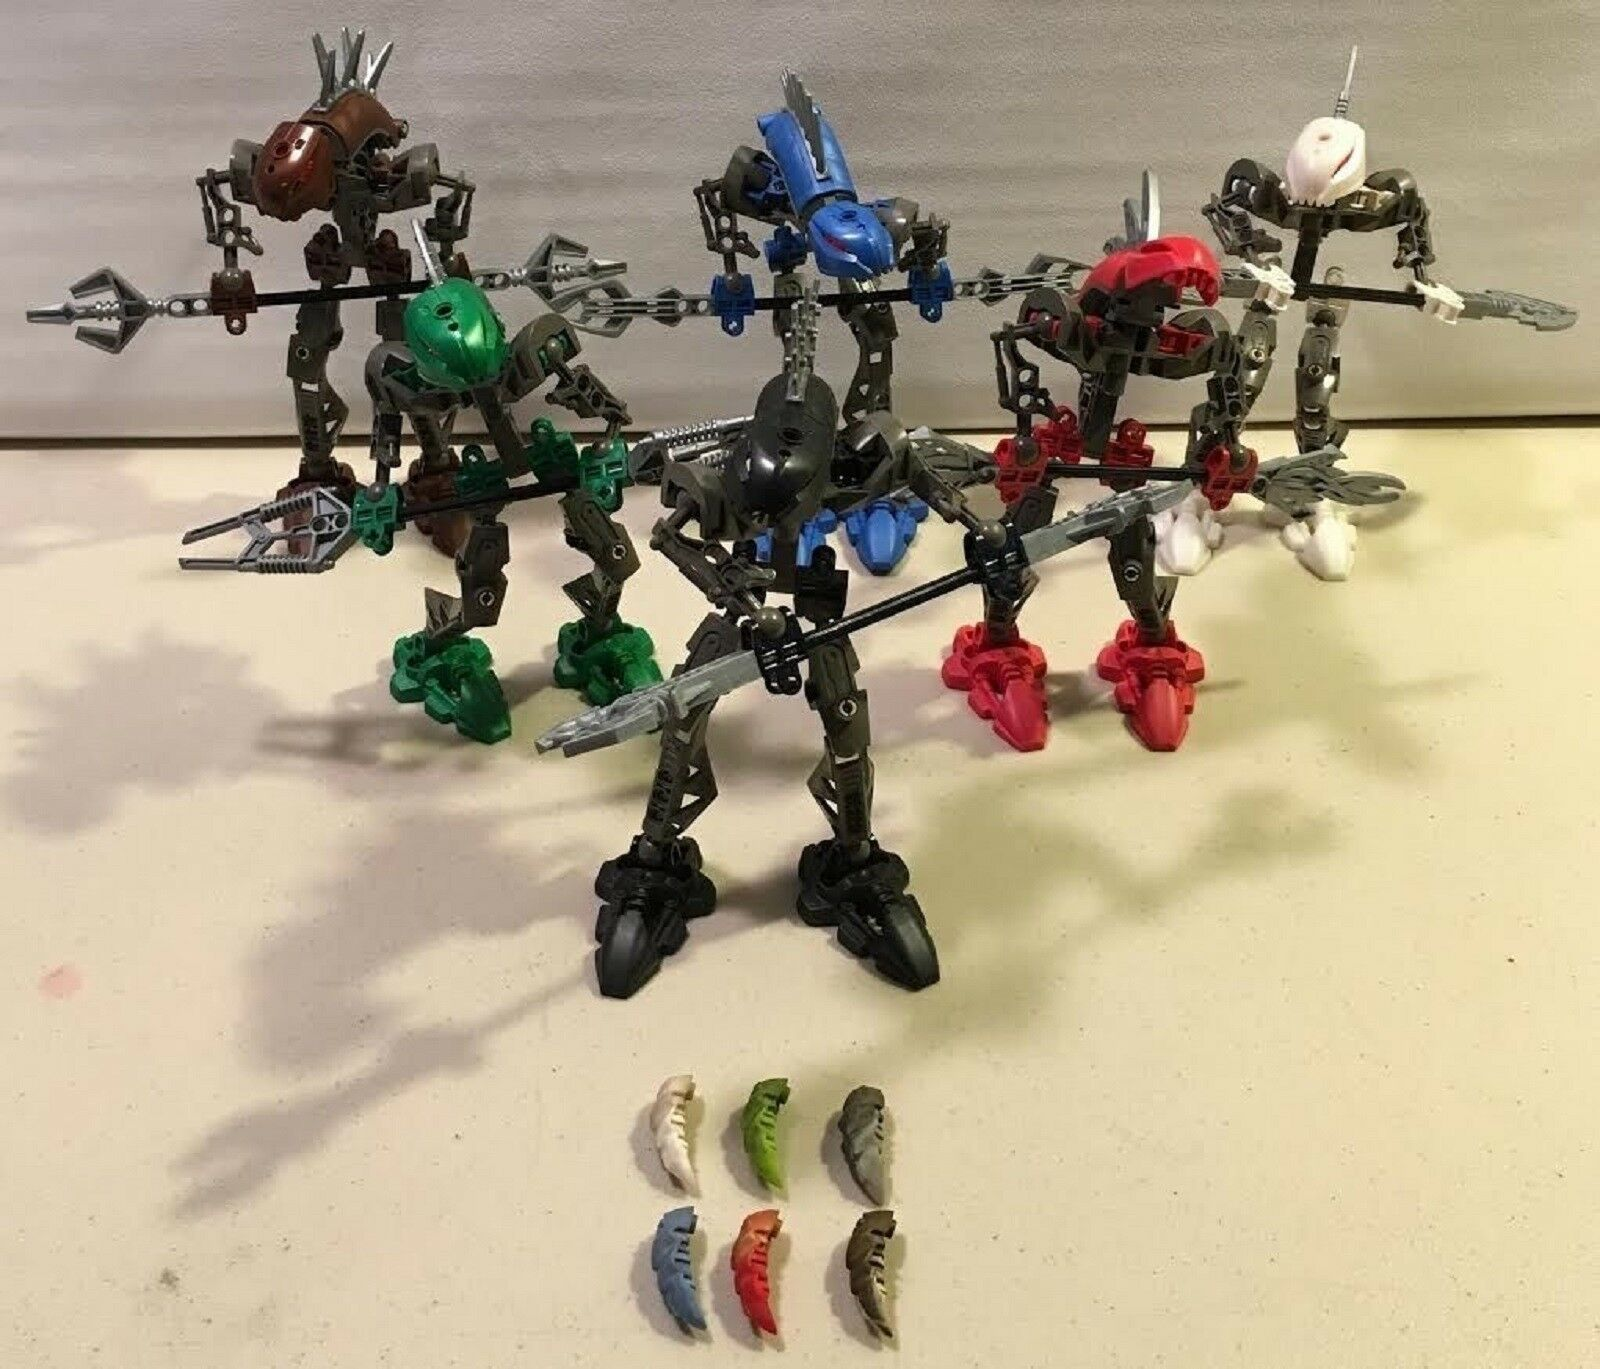 Lego Lego Lego 8587 8588 8589 8590 8591 8592 Bionicle Mata Nui  6 Notices complet CNG5 8f2198